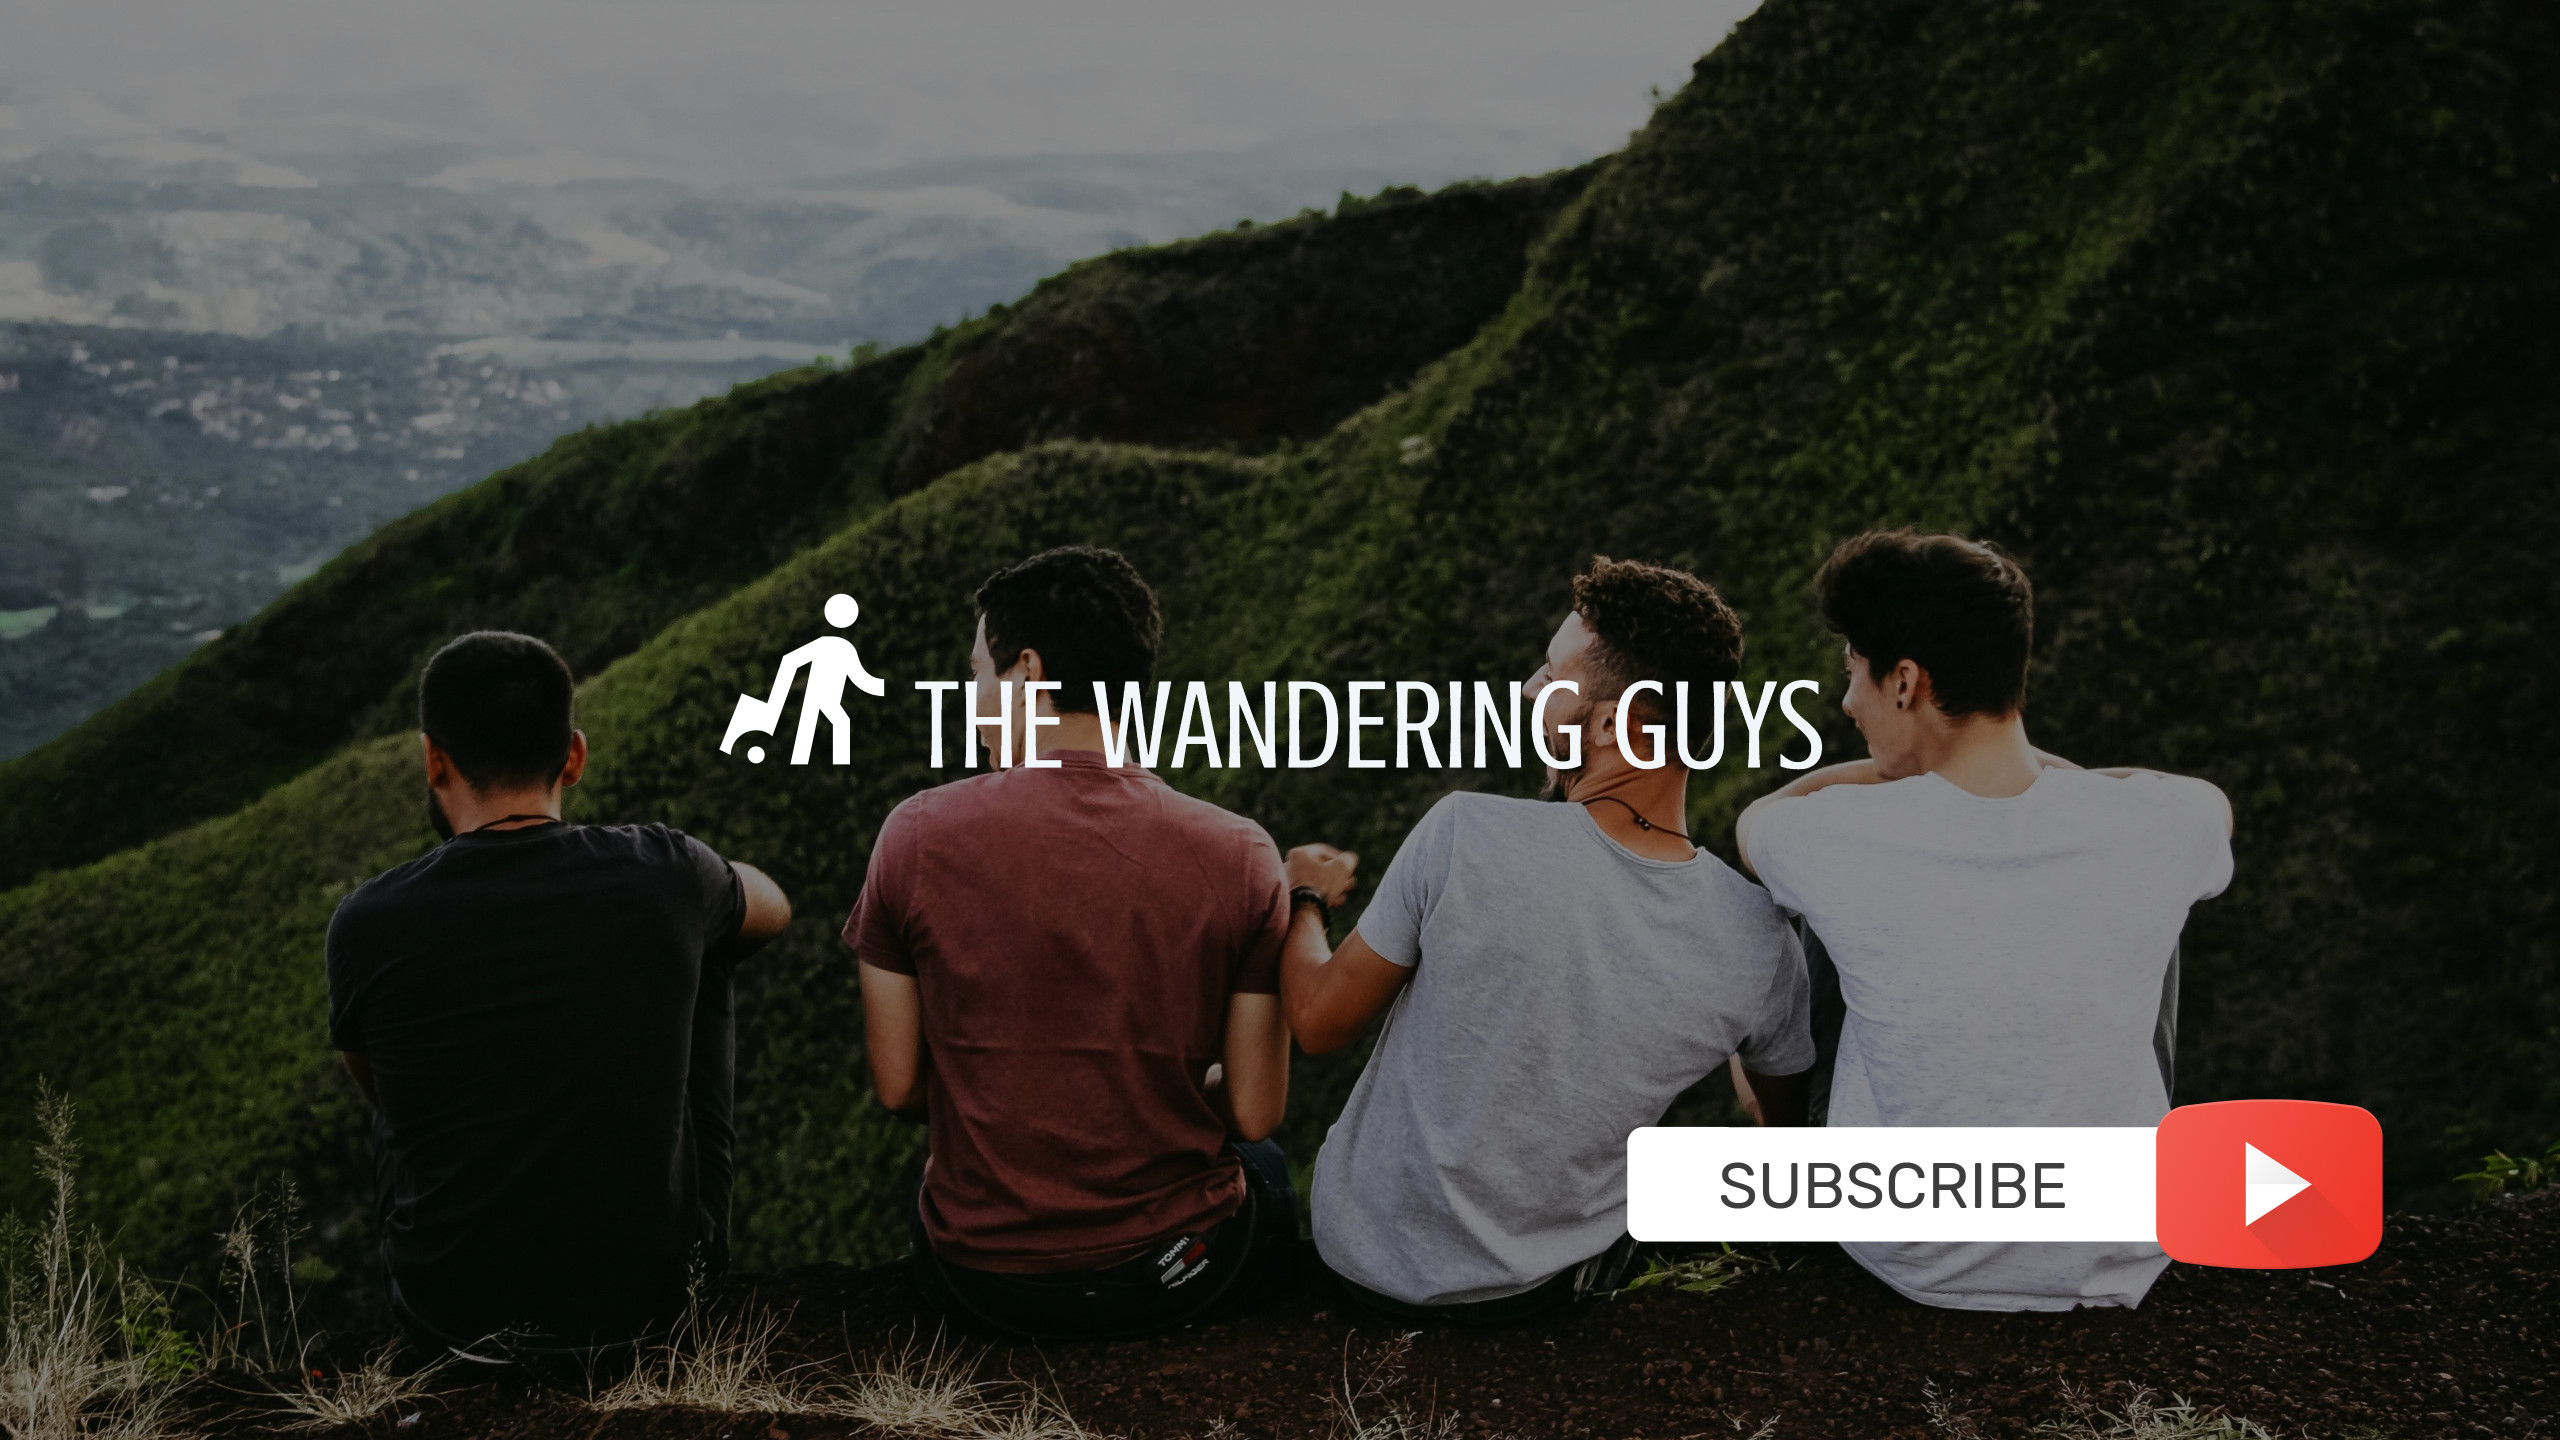 Manly Youtube Channel Cover with Subscription